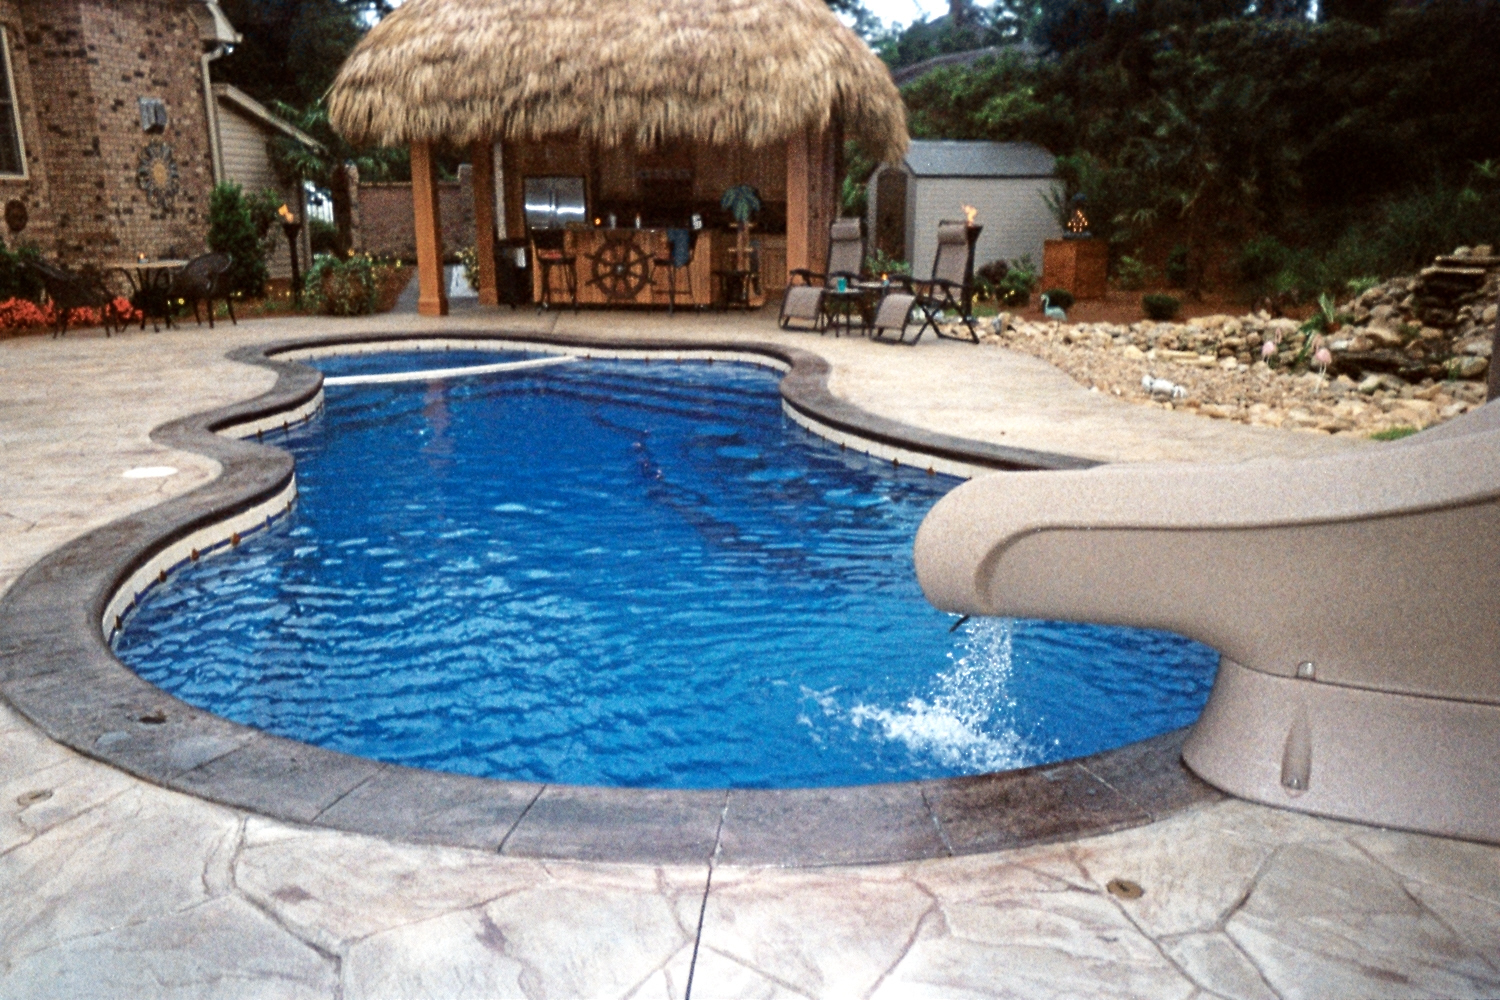 Fiberglass pool installation gold coast pools llc Fiberglass swimming pool installation